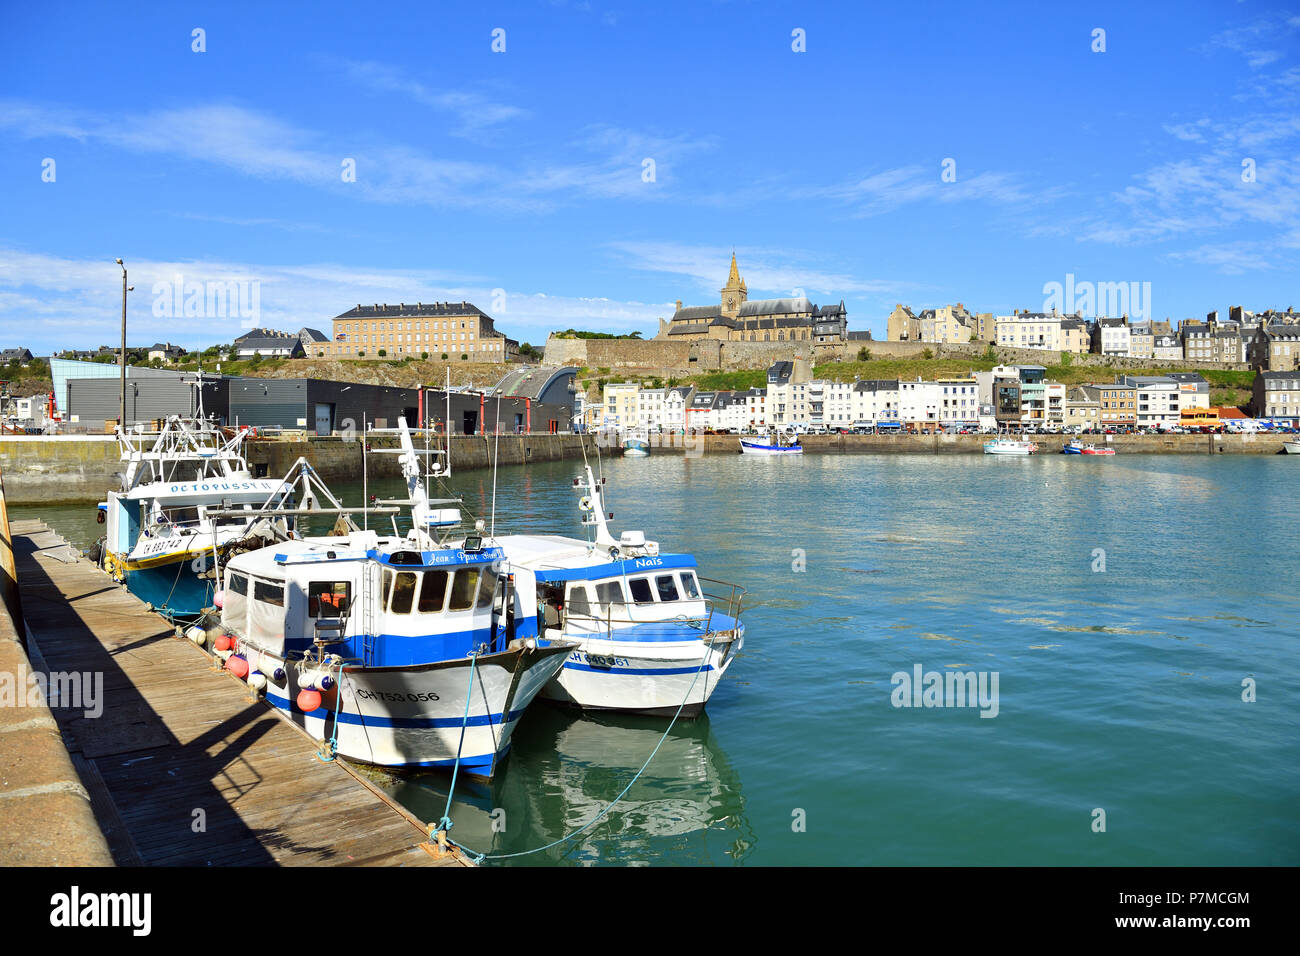 France, Manche, Cotentin, Granville, the Upper Town built on a rocky headland on the far eastern point of the Mont Saint Michel Bay, the fishing port and the Notre Dame du Cap Lihou - Stock Image